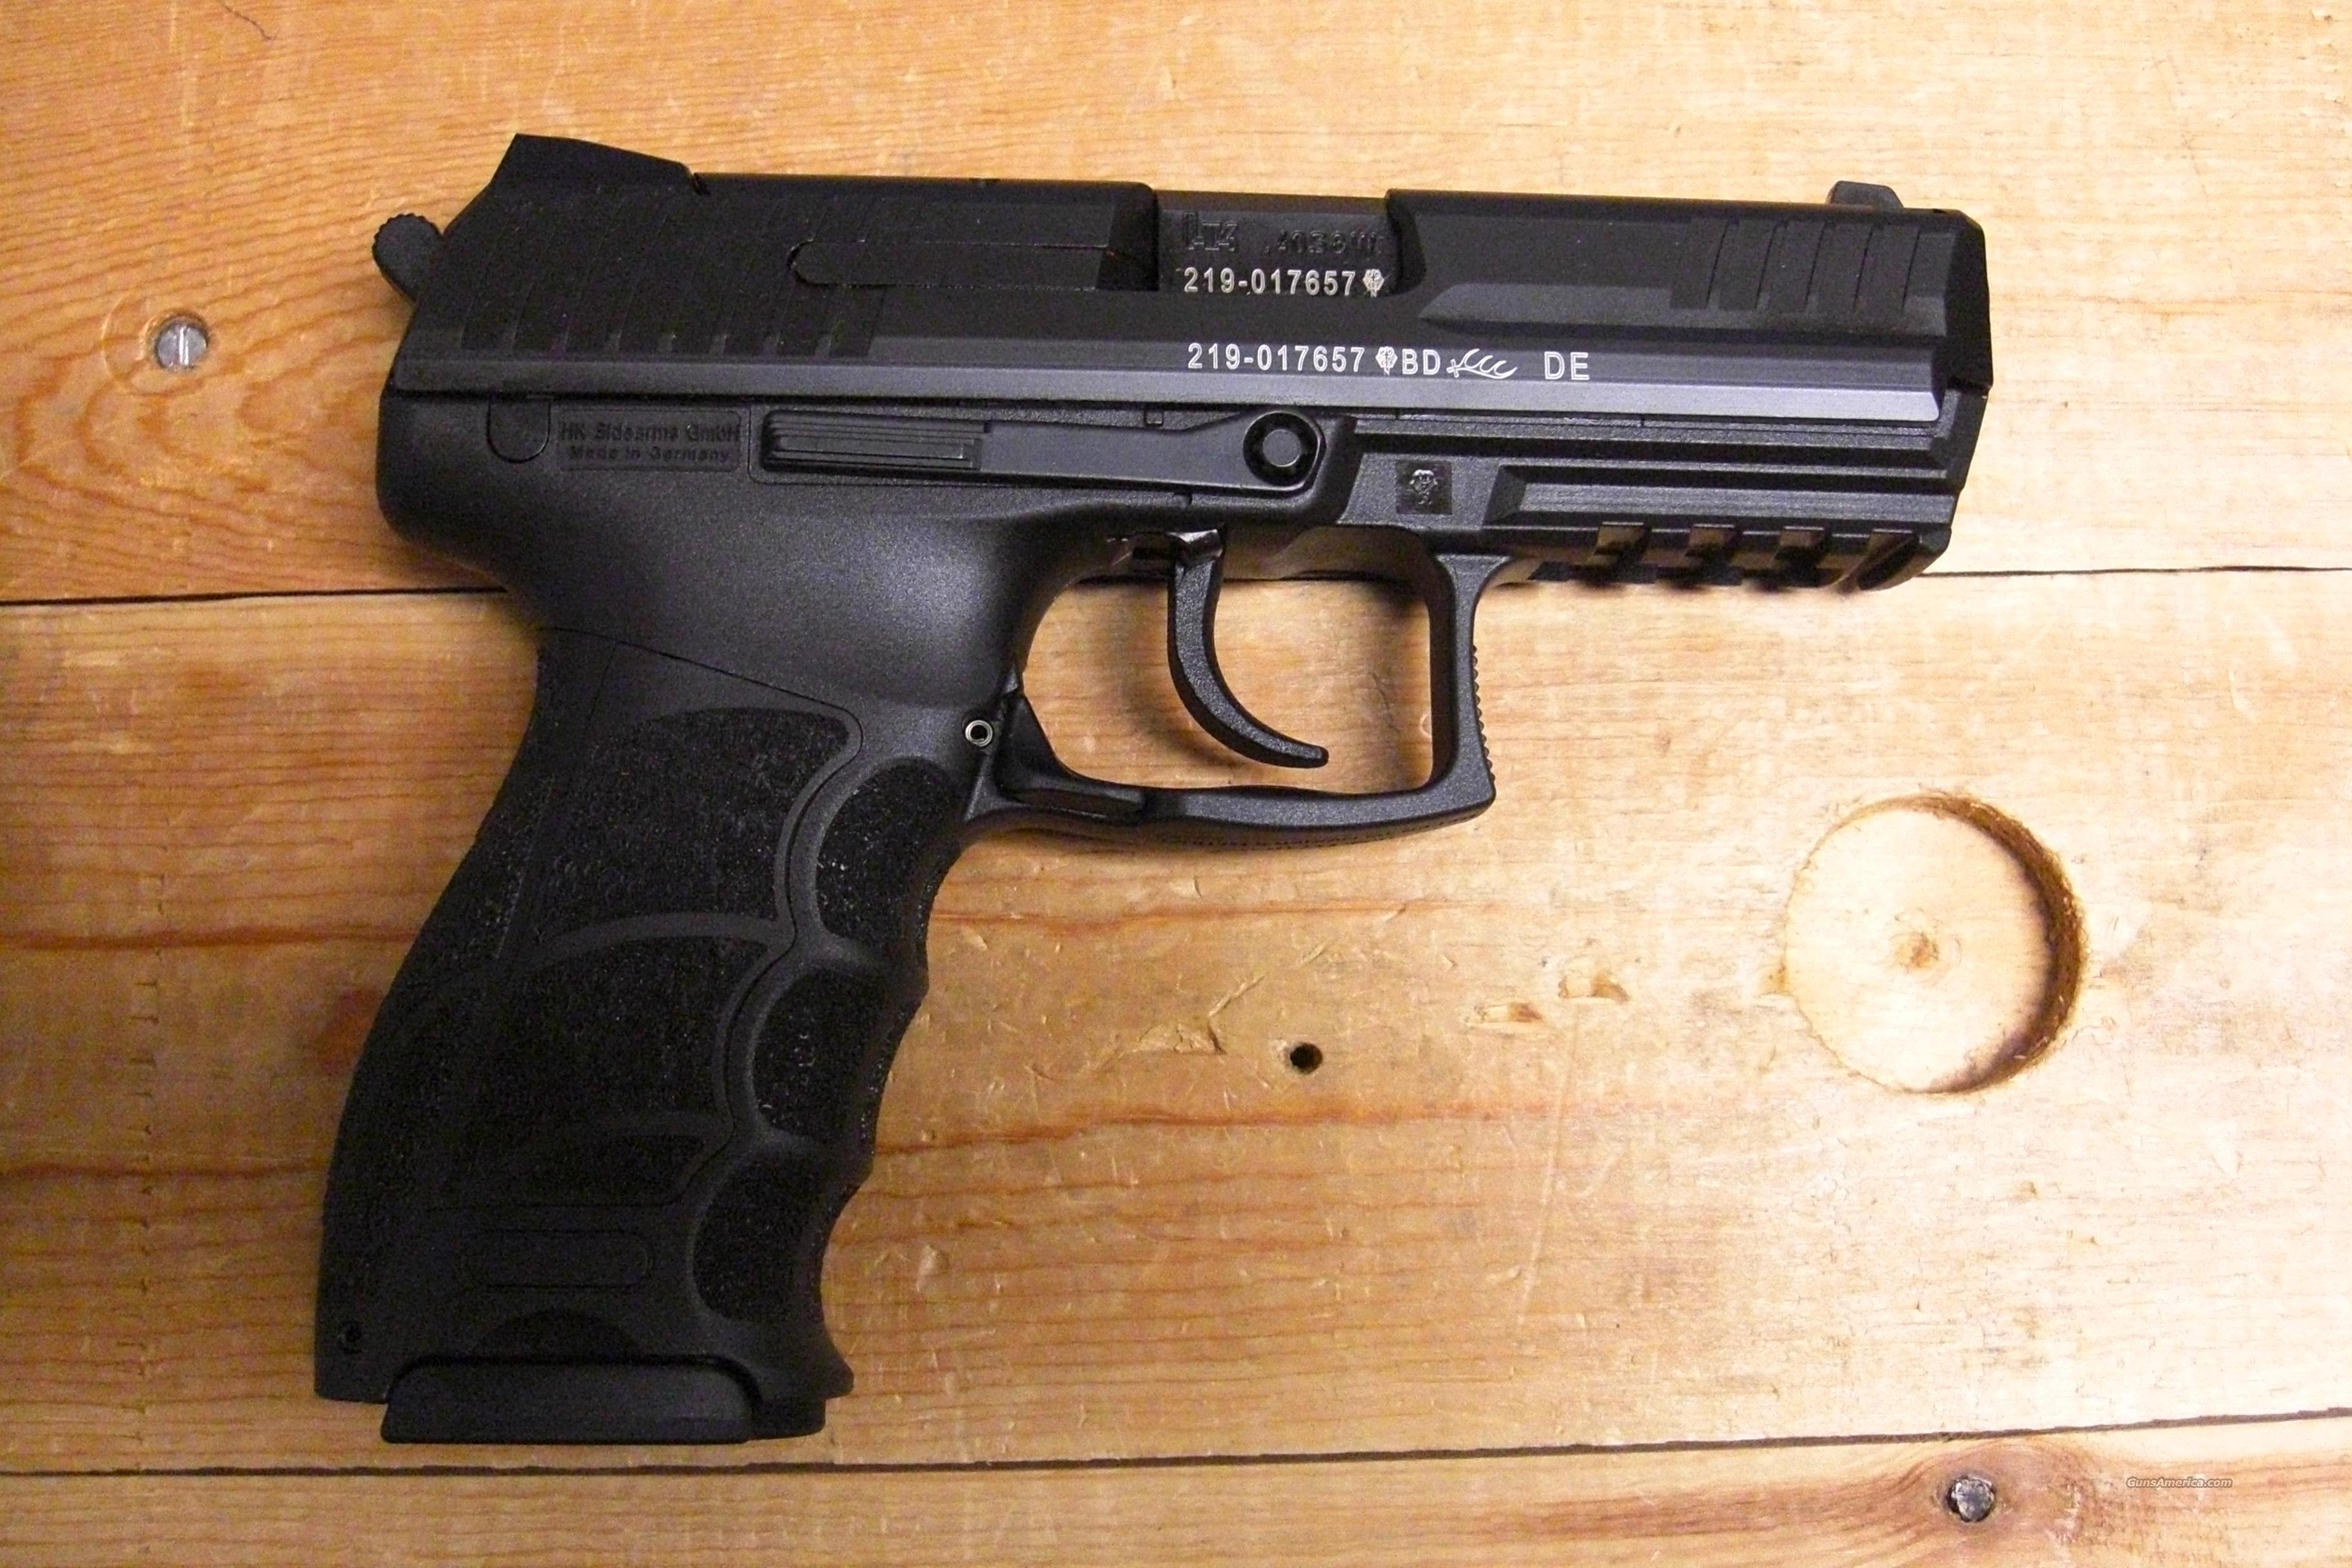 P30  V3 w/luminescent sights  Guns > Pistols > Heckler & Koch Pistols > Polymer Frame